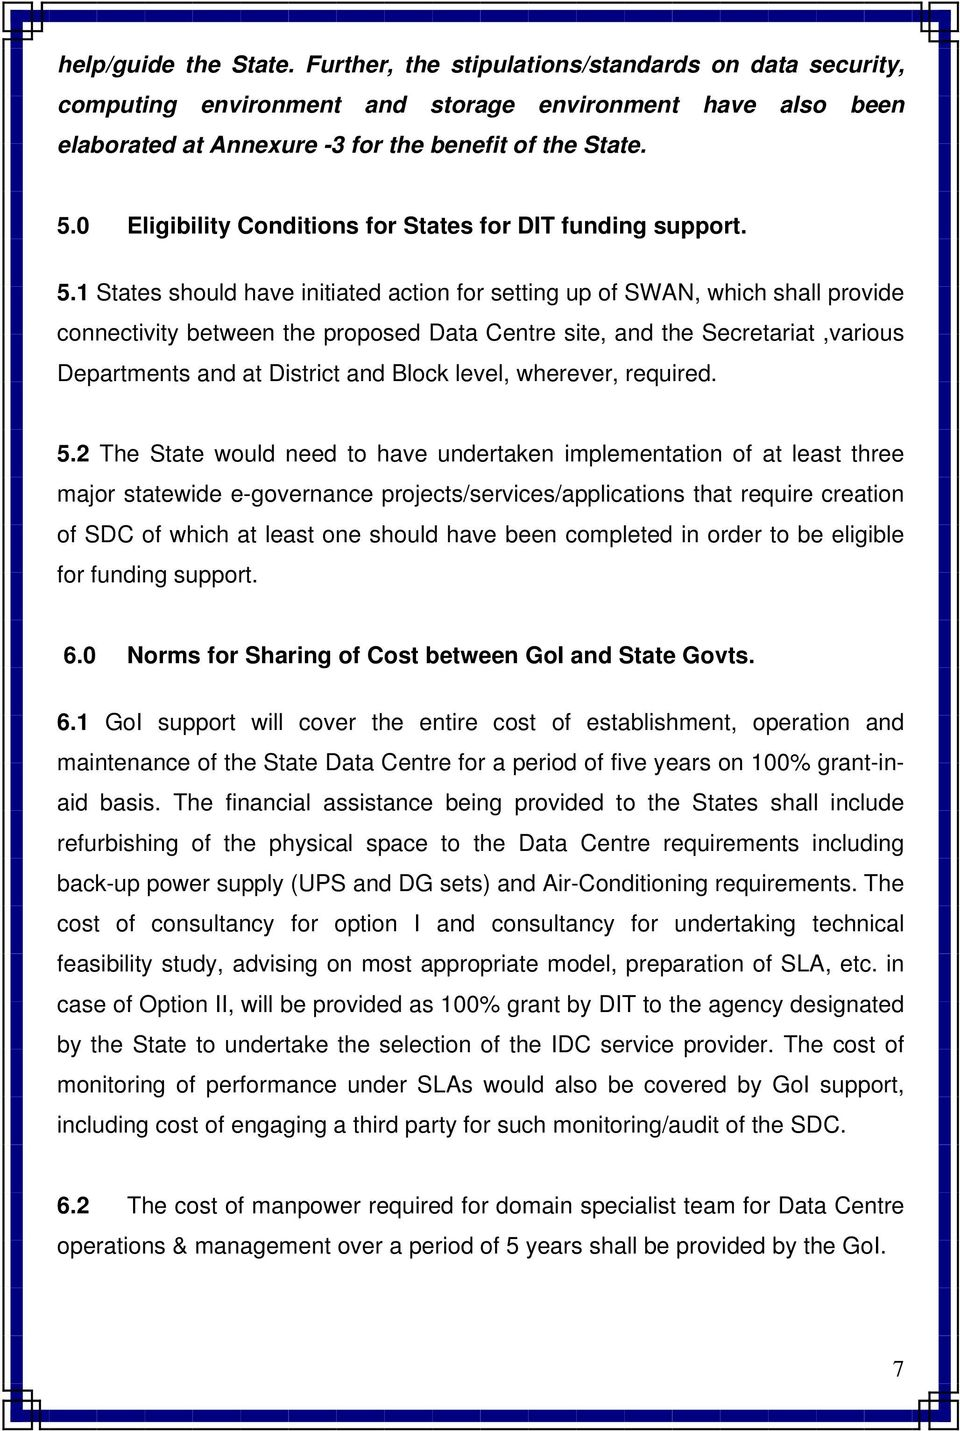 1 States should have initiated action for setting up of SWAN, which shall provide connectivity between the proposed Data Centre site, and the Secretariat,various Departments and at District and Block